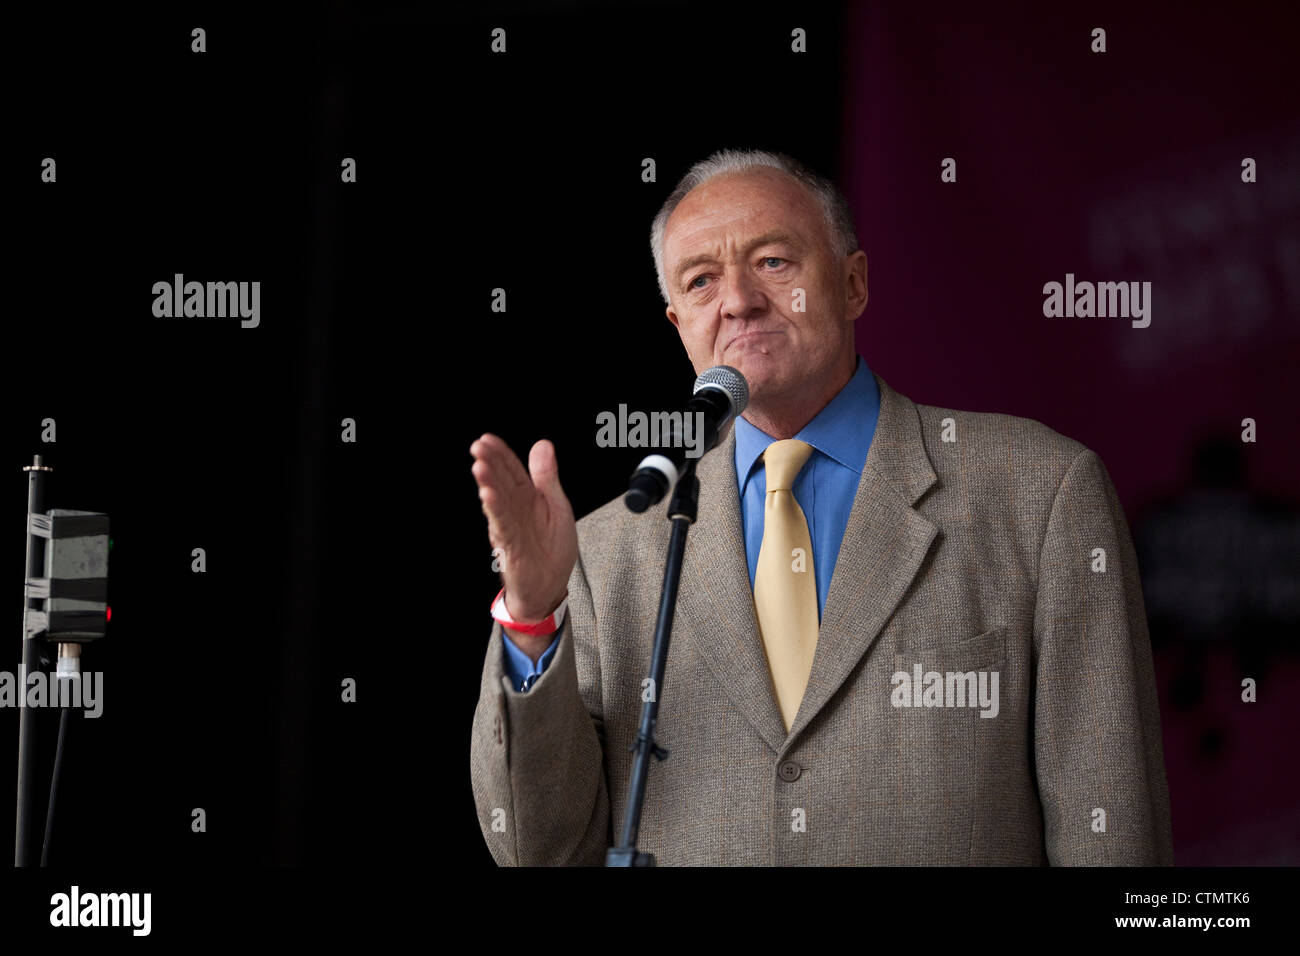 Ken Livingstone on stage at the Public sector rally in London on November 30th 2011 - Stock Image